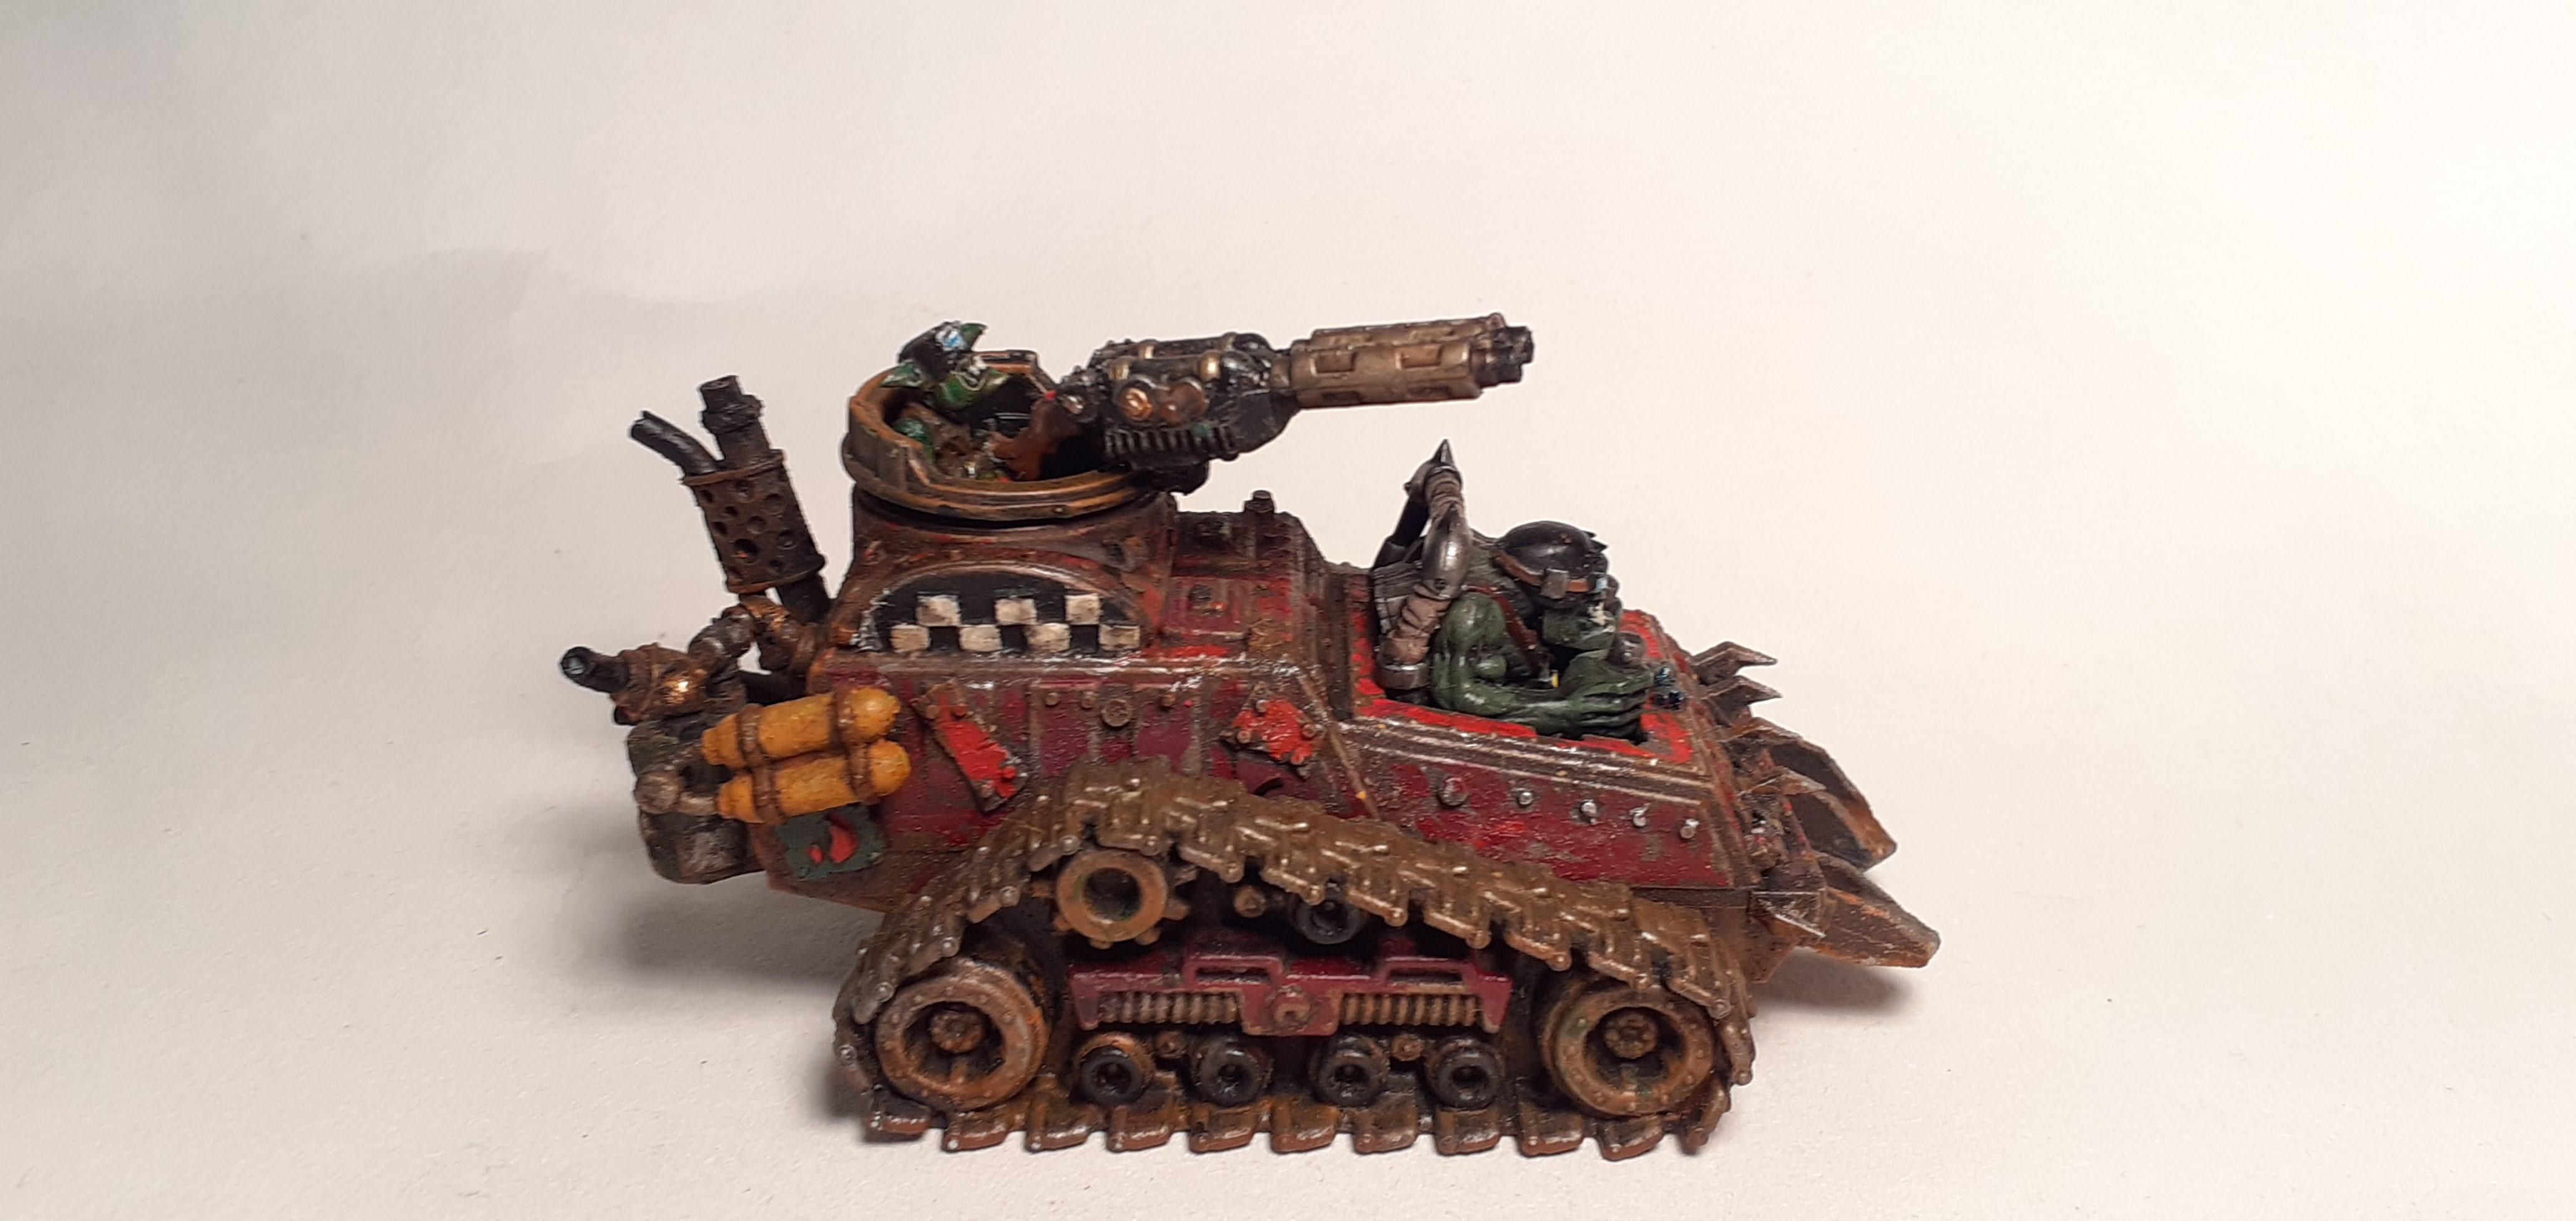 Conversion, Grots, Kitbashed, Ork Conversions, Ork Coustom Made Vehicles, Orks, Scratch Build, Warhammer 40,000, Wartrak